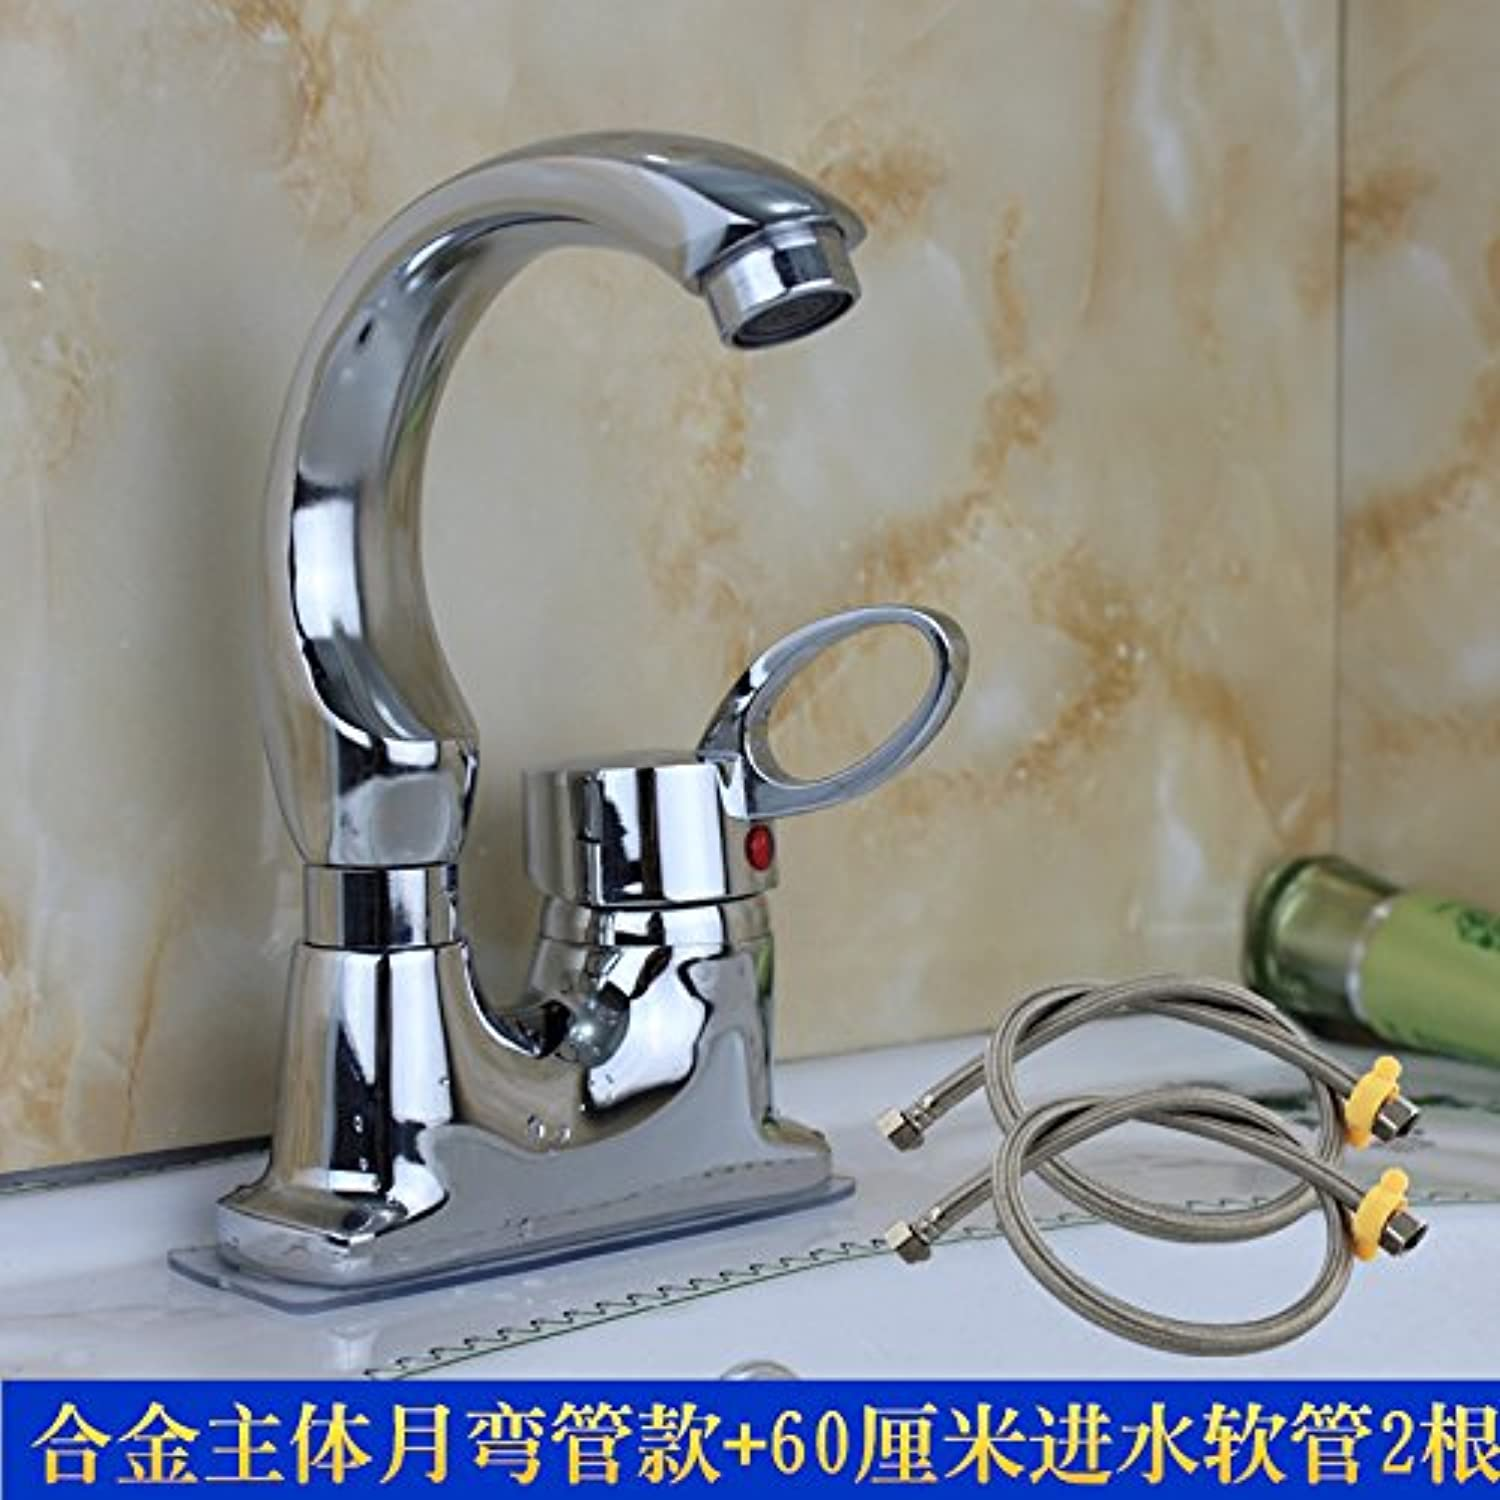 JWLT All copper washbasin, faucet, hot and cold washbasin, toilet, double swivel wash basin, high water faucet,Alloy faucet60 cm steel hose 2